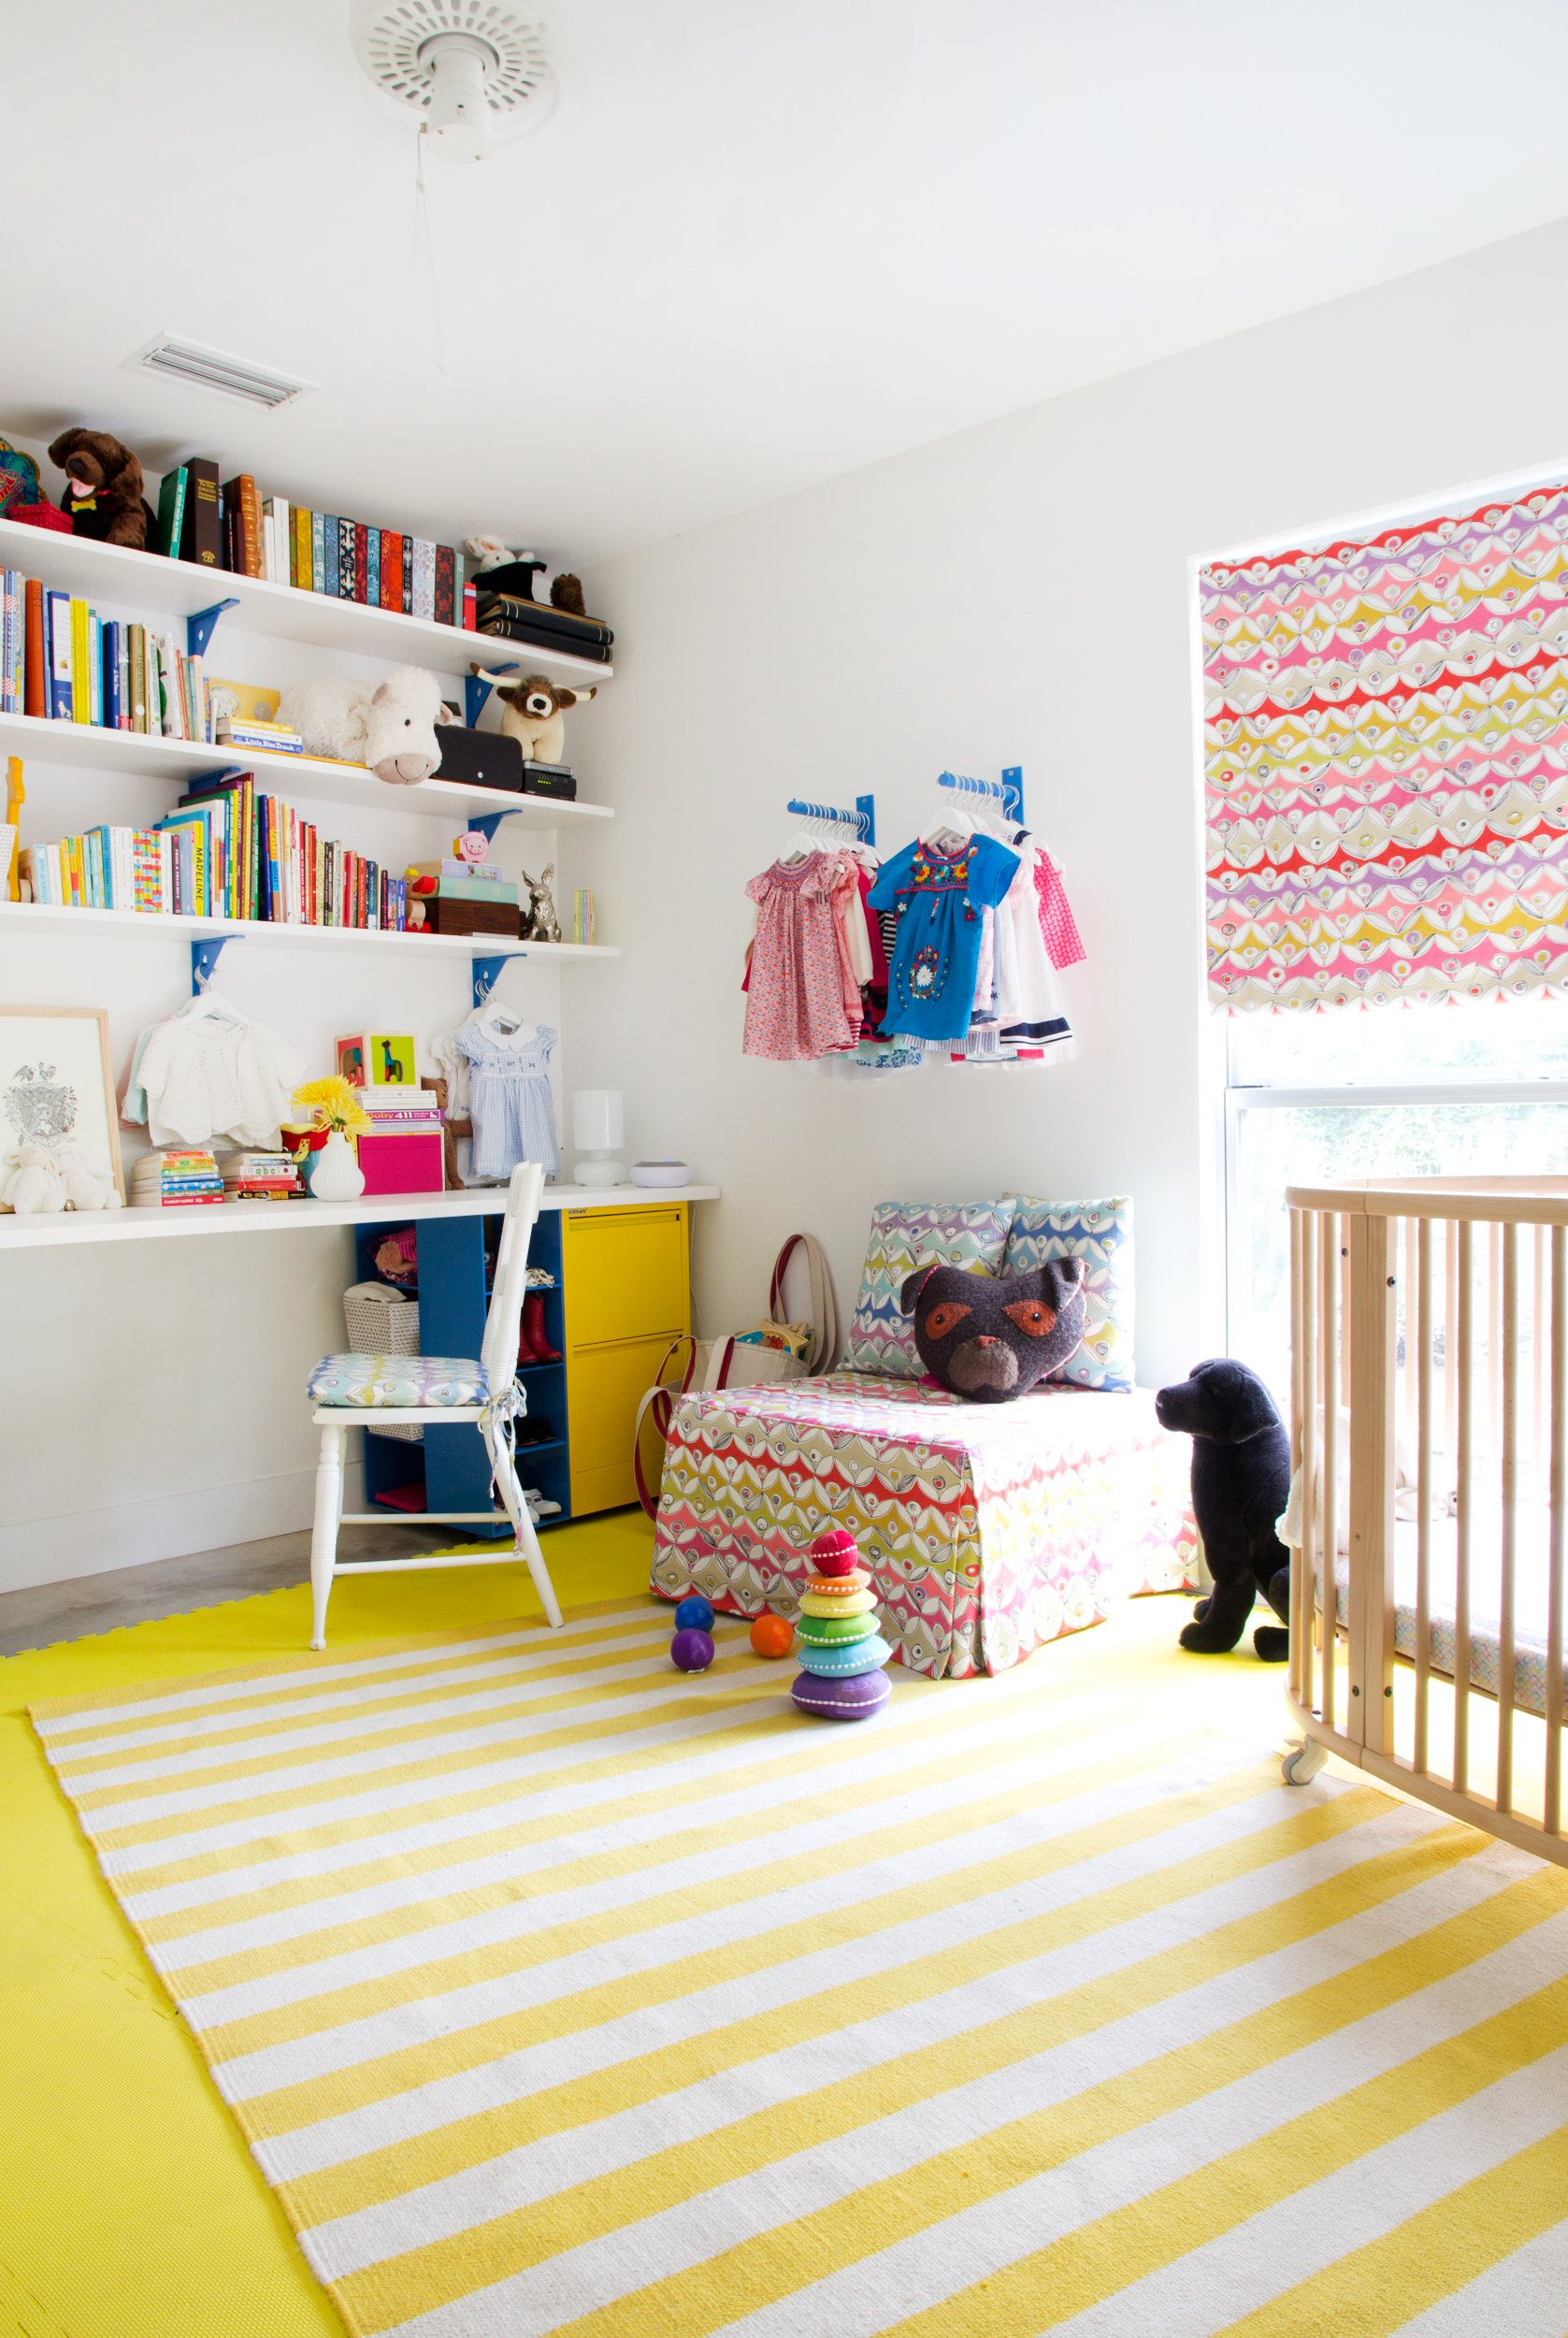 15 Real Life Storage Solutions for Kids Rooms   Apartment ...